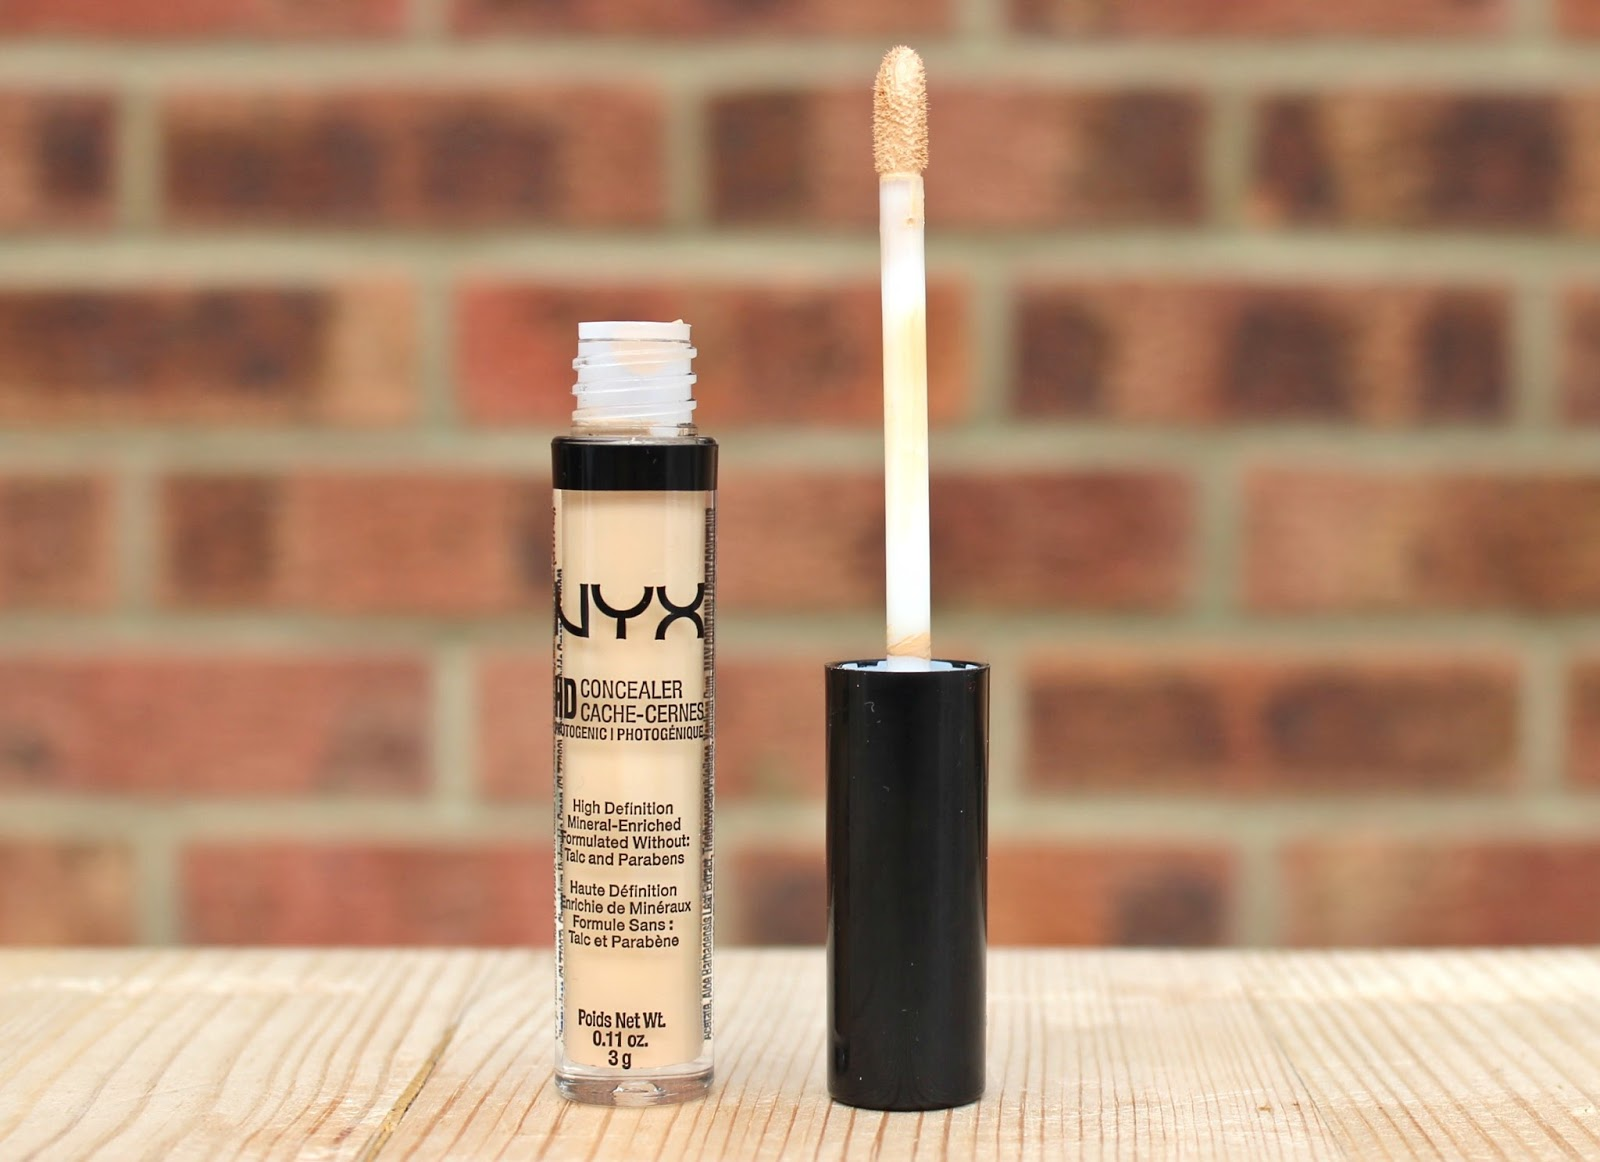 Bargain Beauty: NYX HD Concealer Wand